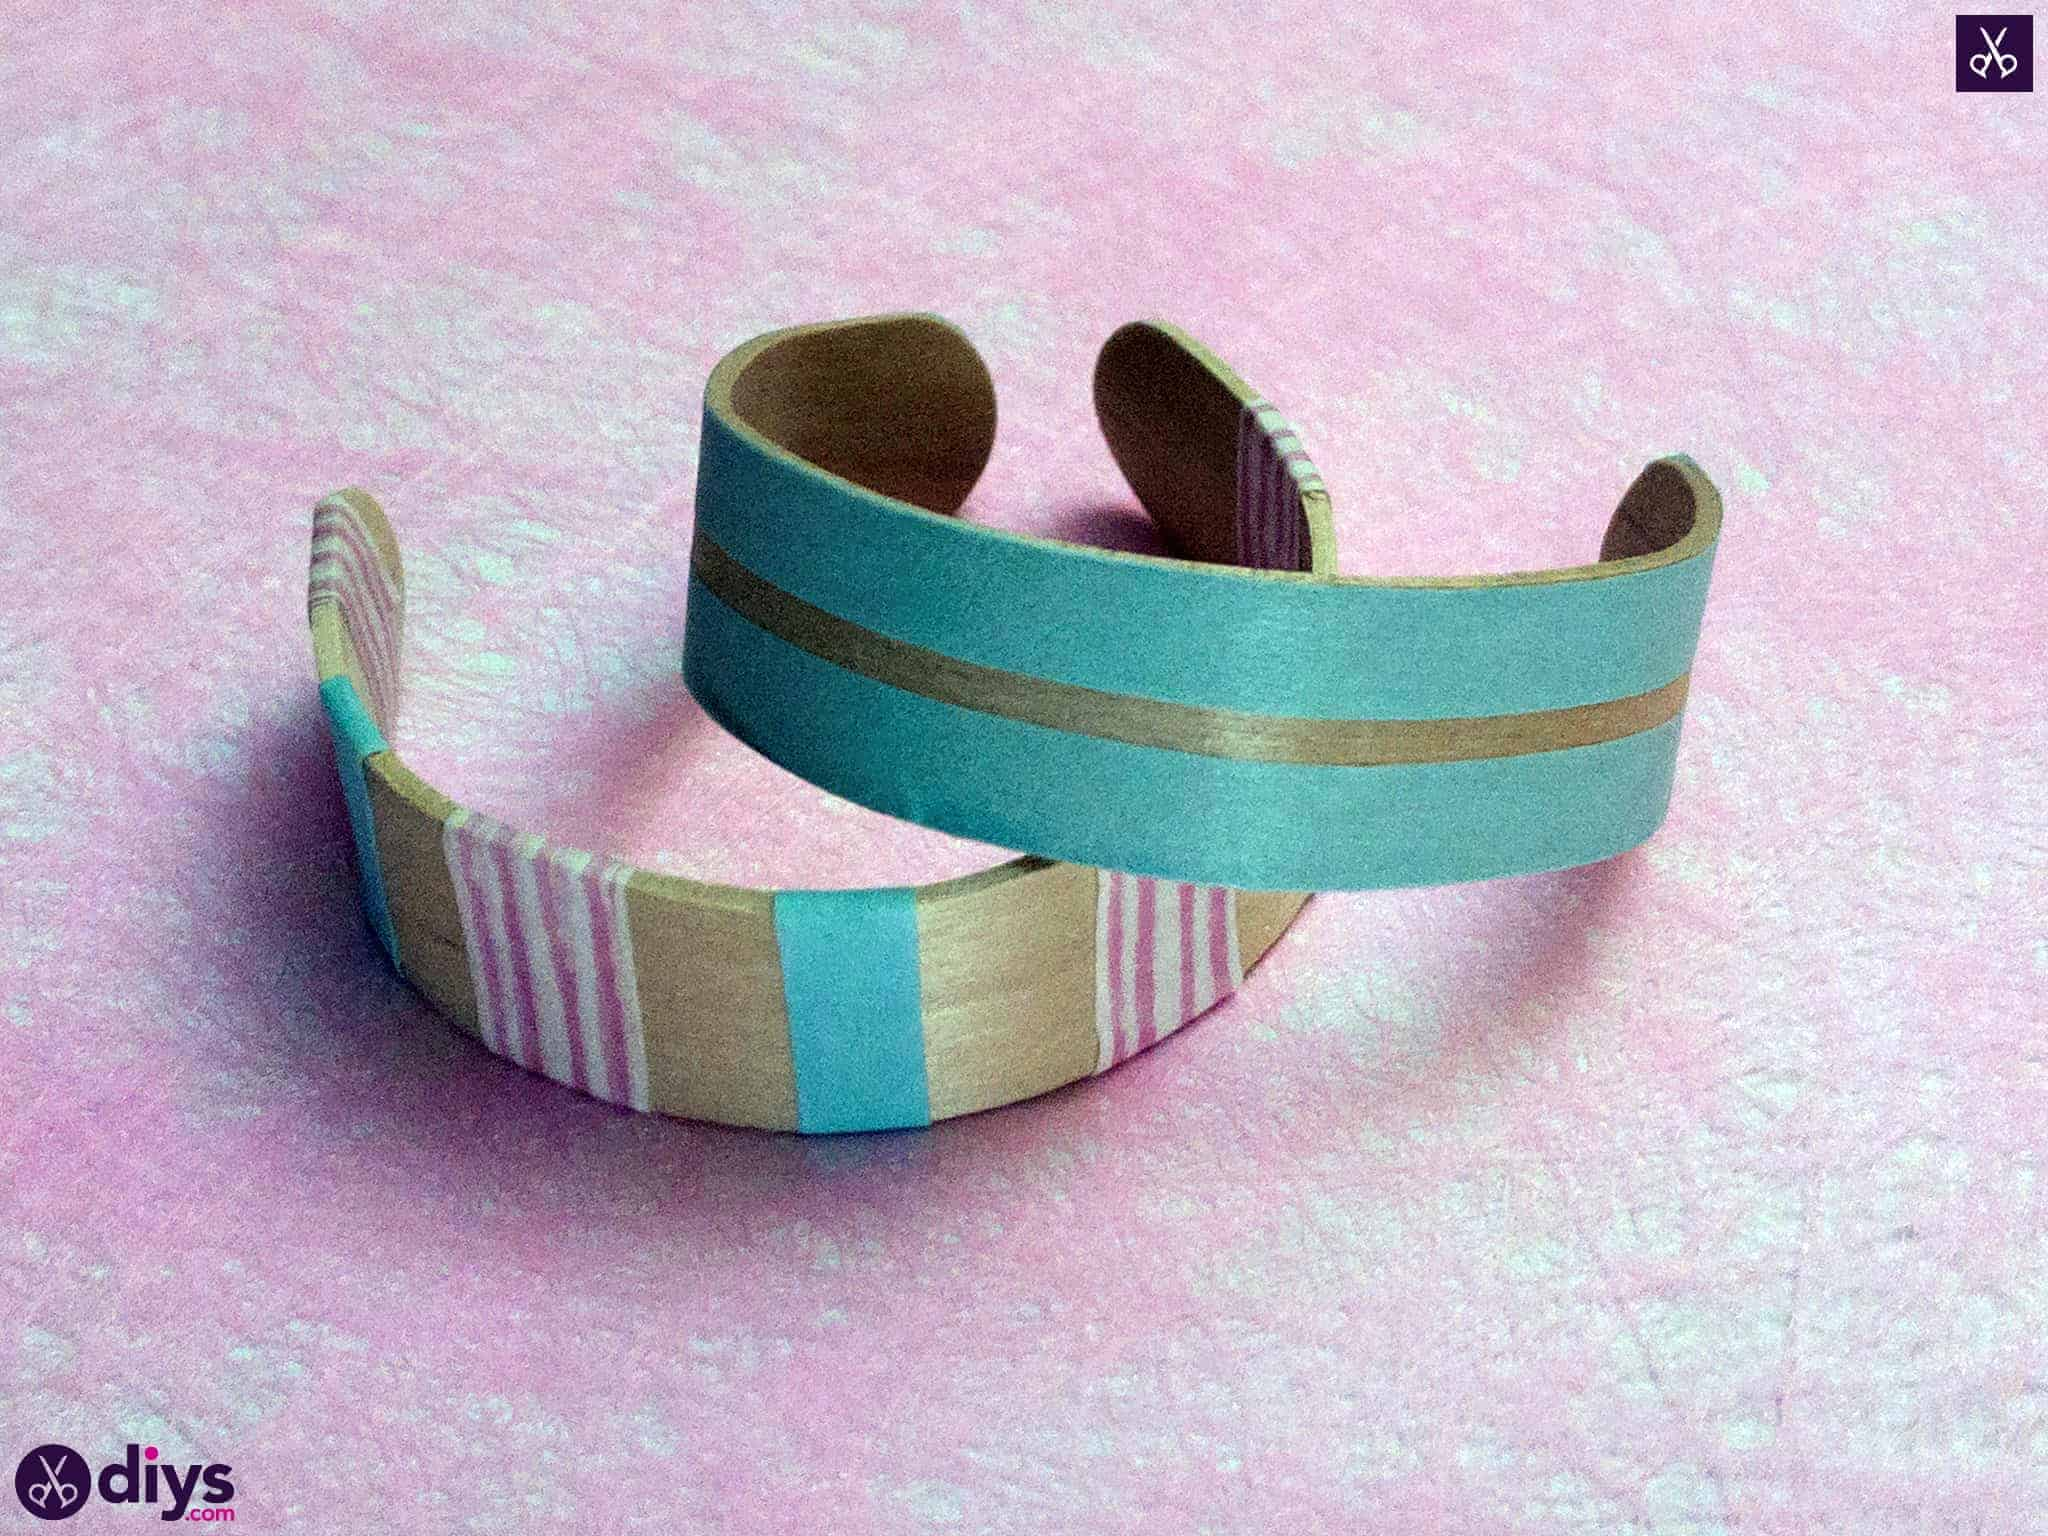 How to make a popsicle stick bracelet